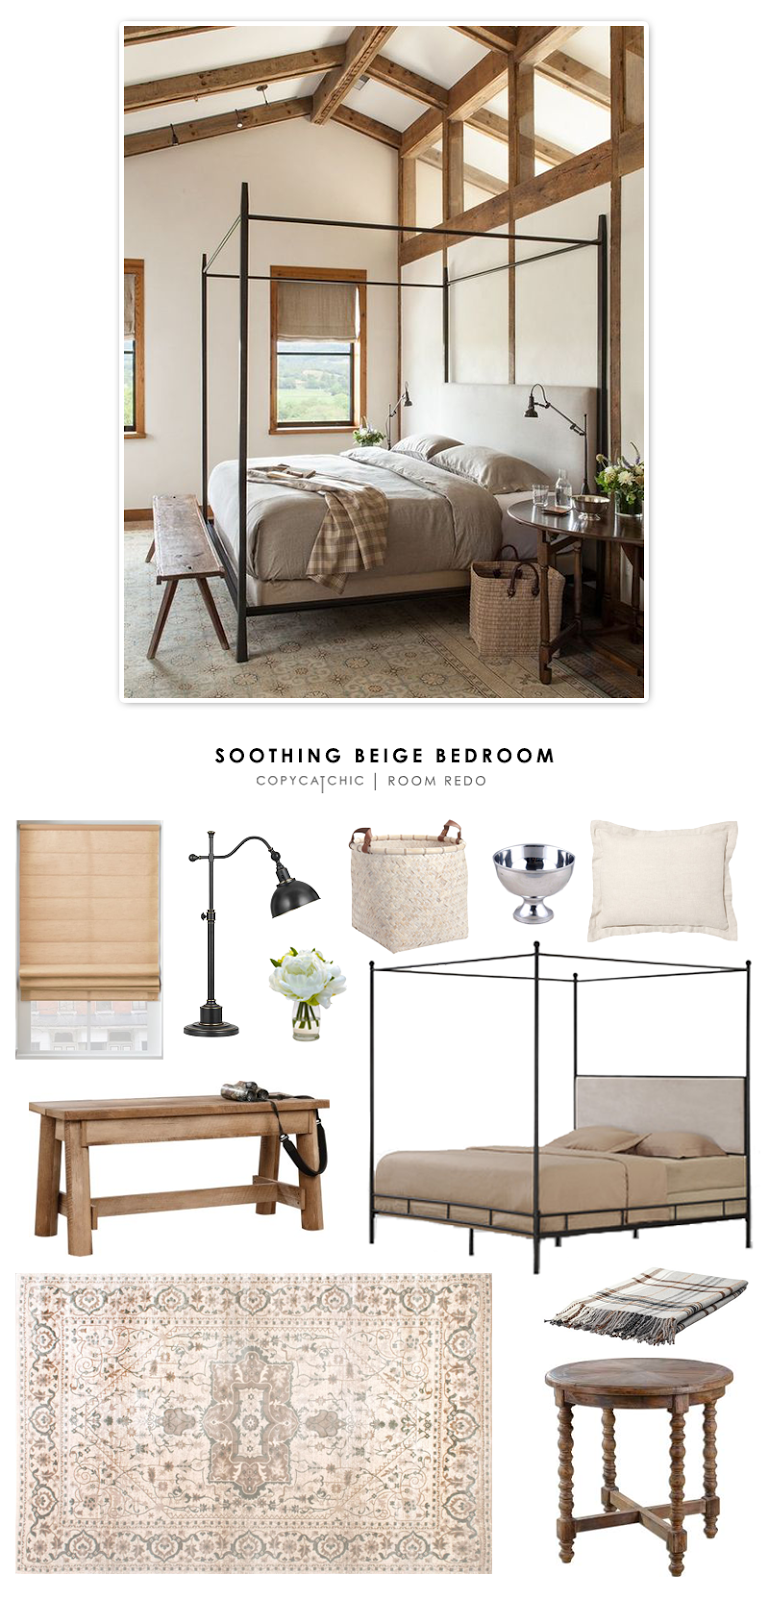 Copy Cat Chic Room Redo Soothing Beige Bedroom Copycatchic